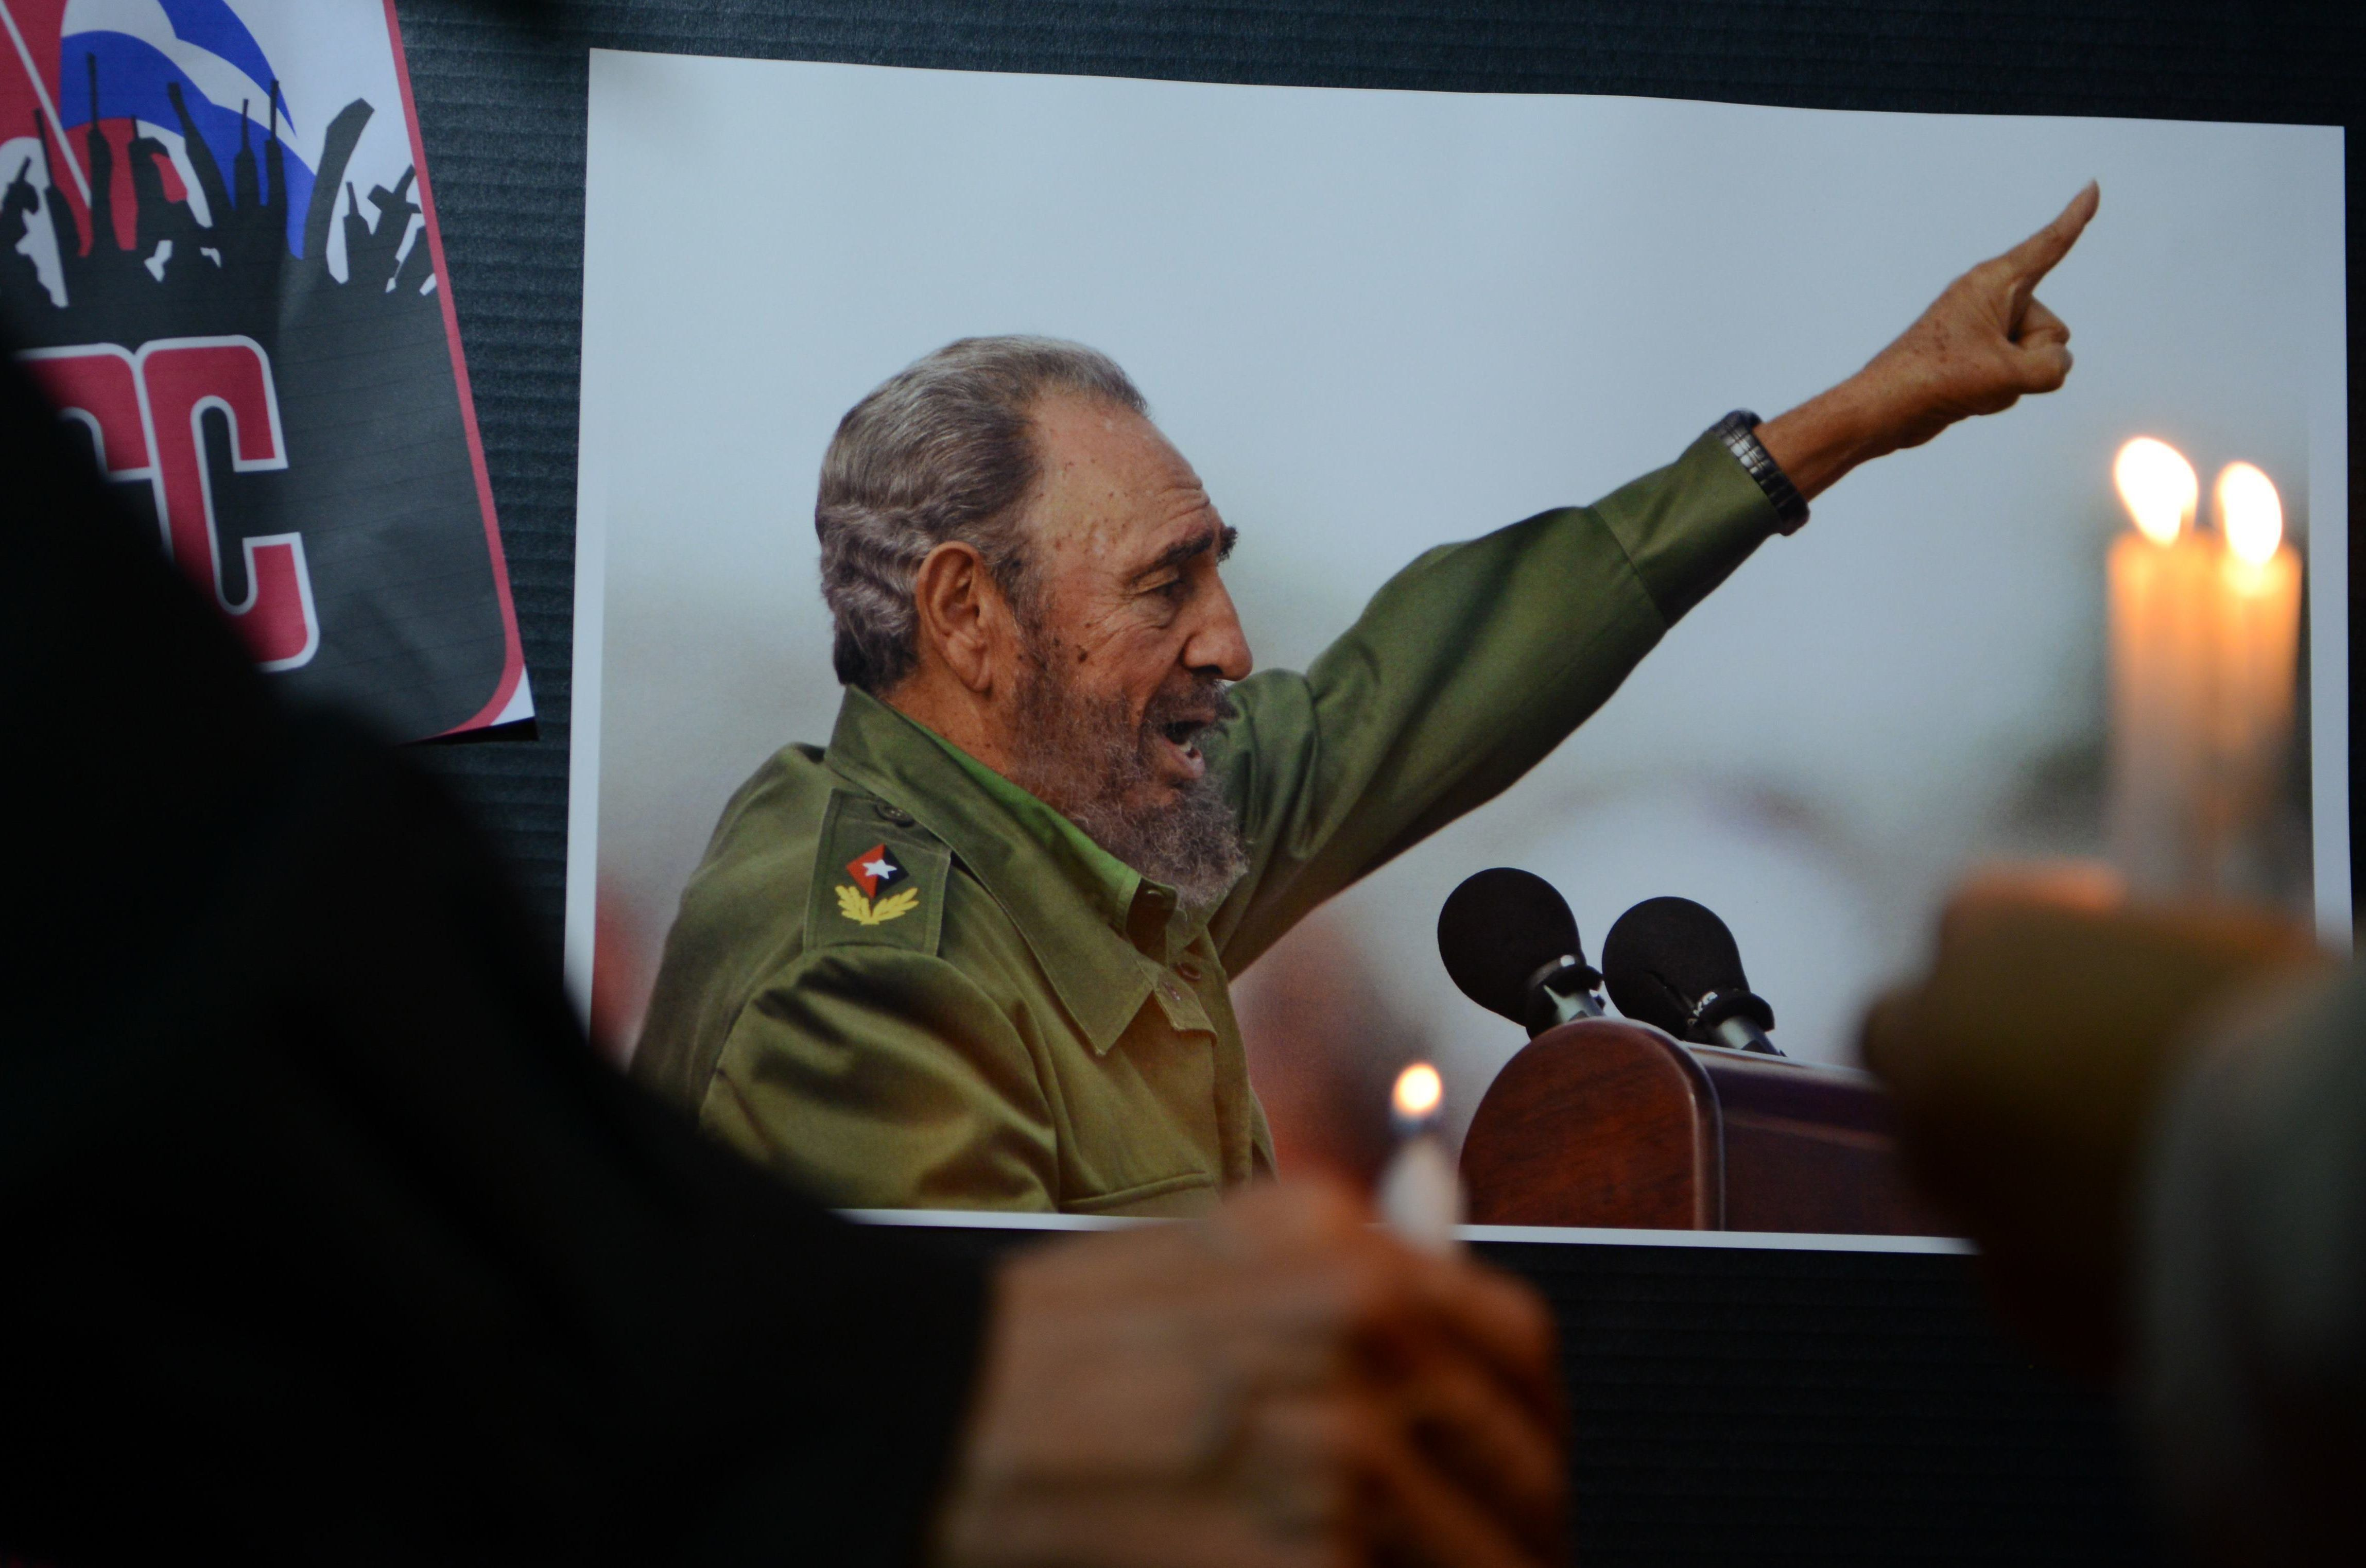 Honduras' former president Manuel Zelaya (L) holds a candle to pay tribute to Cuban historic revolutionary leader Fidel Castro a day after his death, during a gathering at Marti Square in Tegucigalpa, on November 26, 2016. Cuban revolutionary icon Fidel Castro died late Friday in Havana, his brother, President Raul Castro, announced on national television. Castro's ashes will be buried in the historic southeastern city of Santiago on December 4 after a four-day procession through the country. / AFP / Orlando SIERRA        (Photo credit should read ORLANDO SIERRA/AFP/Getty Images)